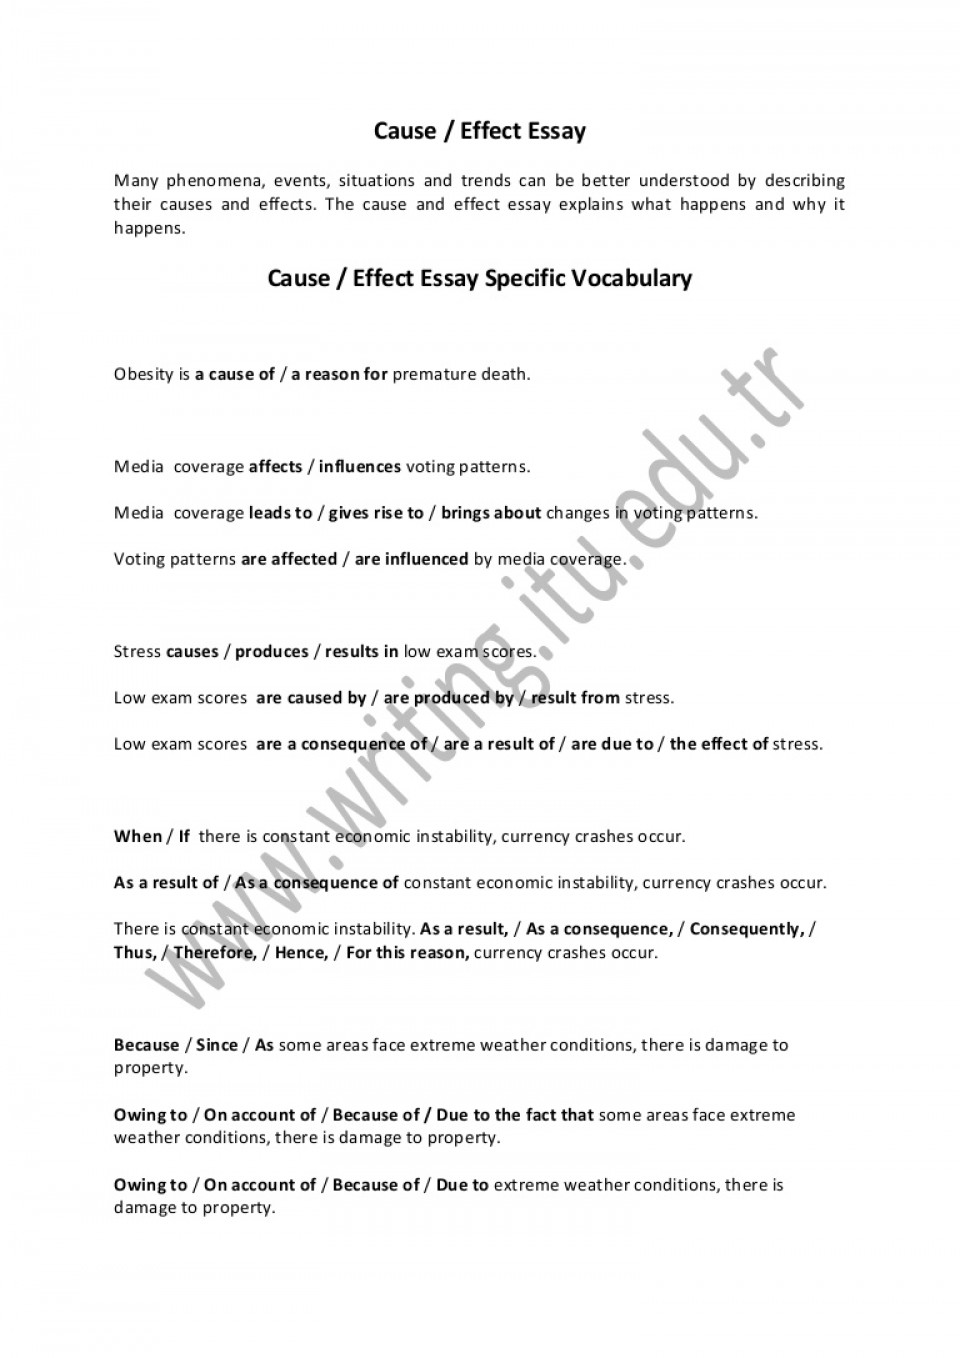 012 Cause And Effect Essay Topics Example Causeandeffectessay Thumbnail Exceptional For College Students High School Basketball 960